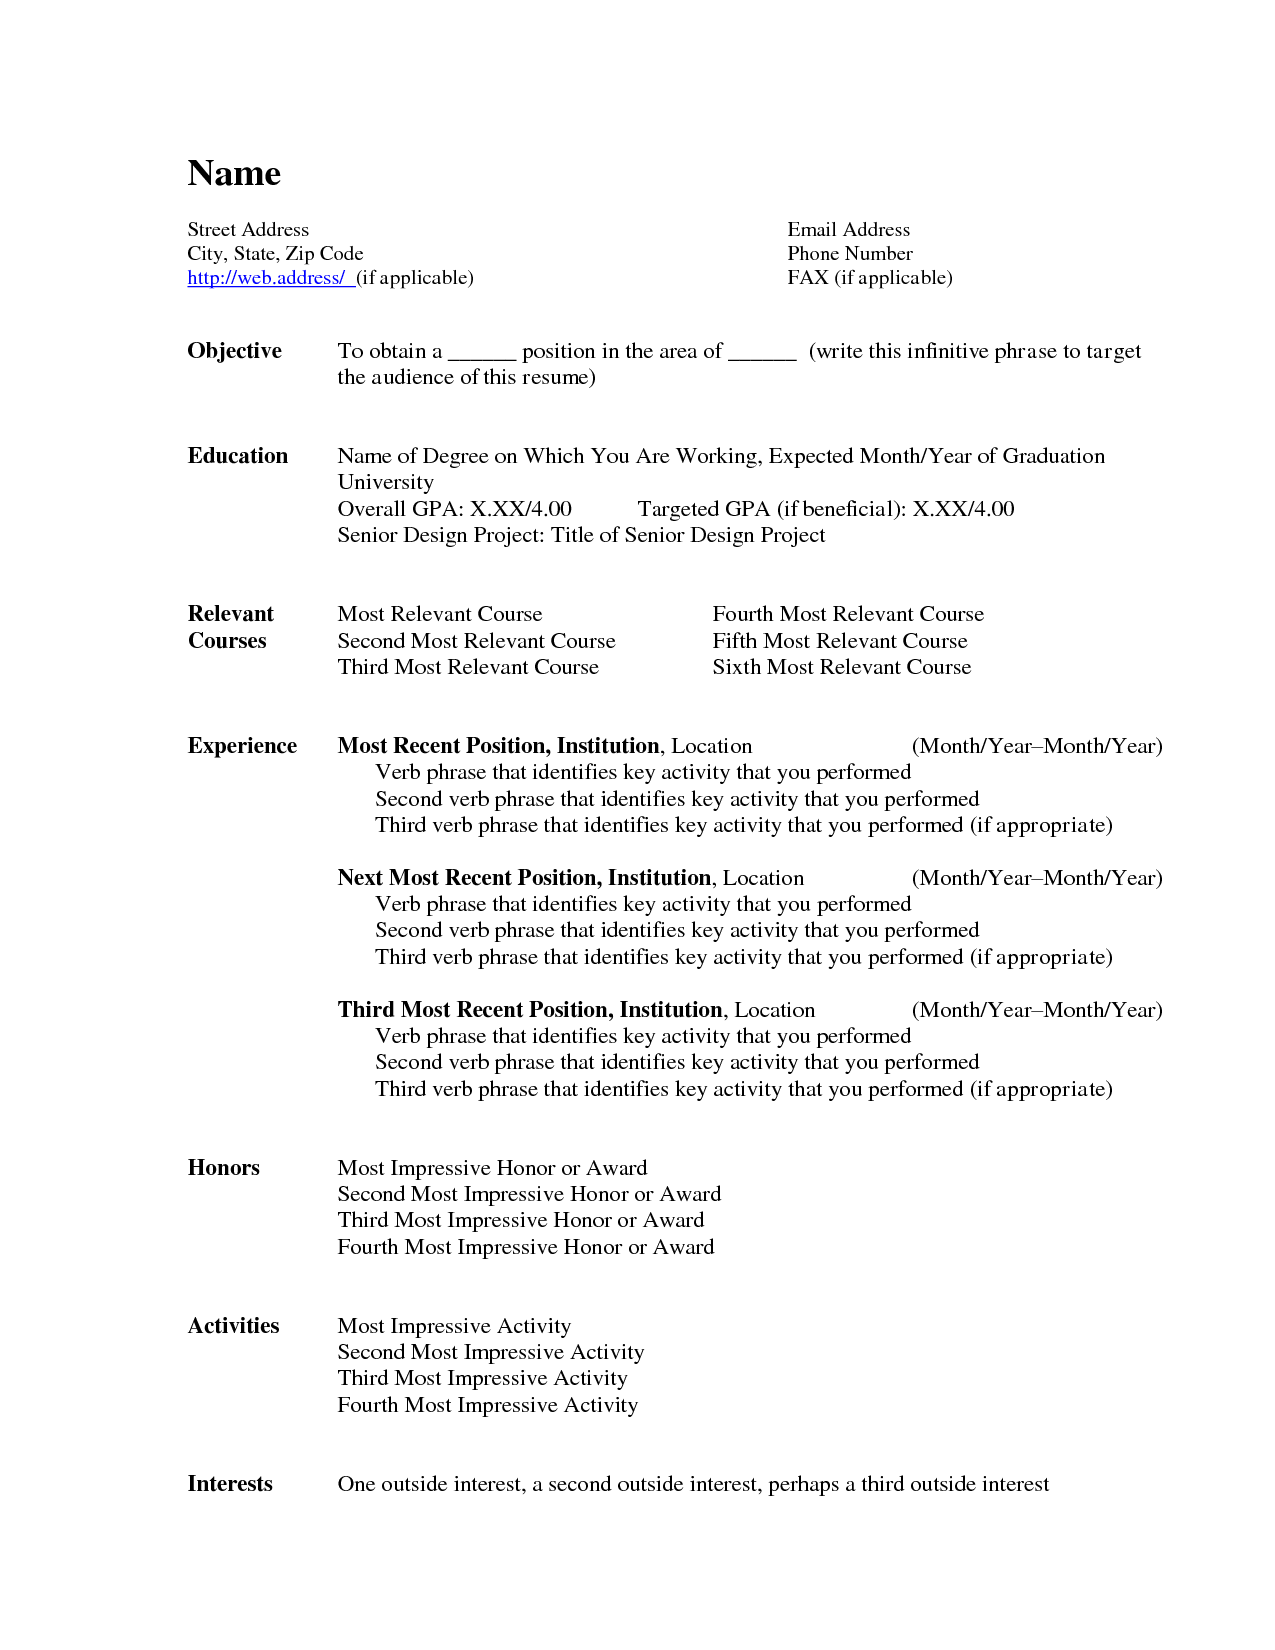 microsoft word resume template resume builder resume resume httpwwwjobresume - Microsoft Word Sample Resume